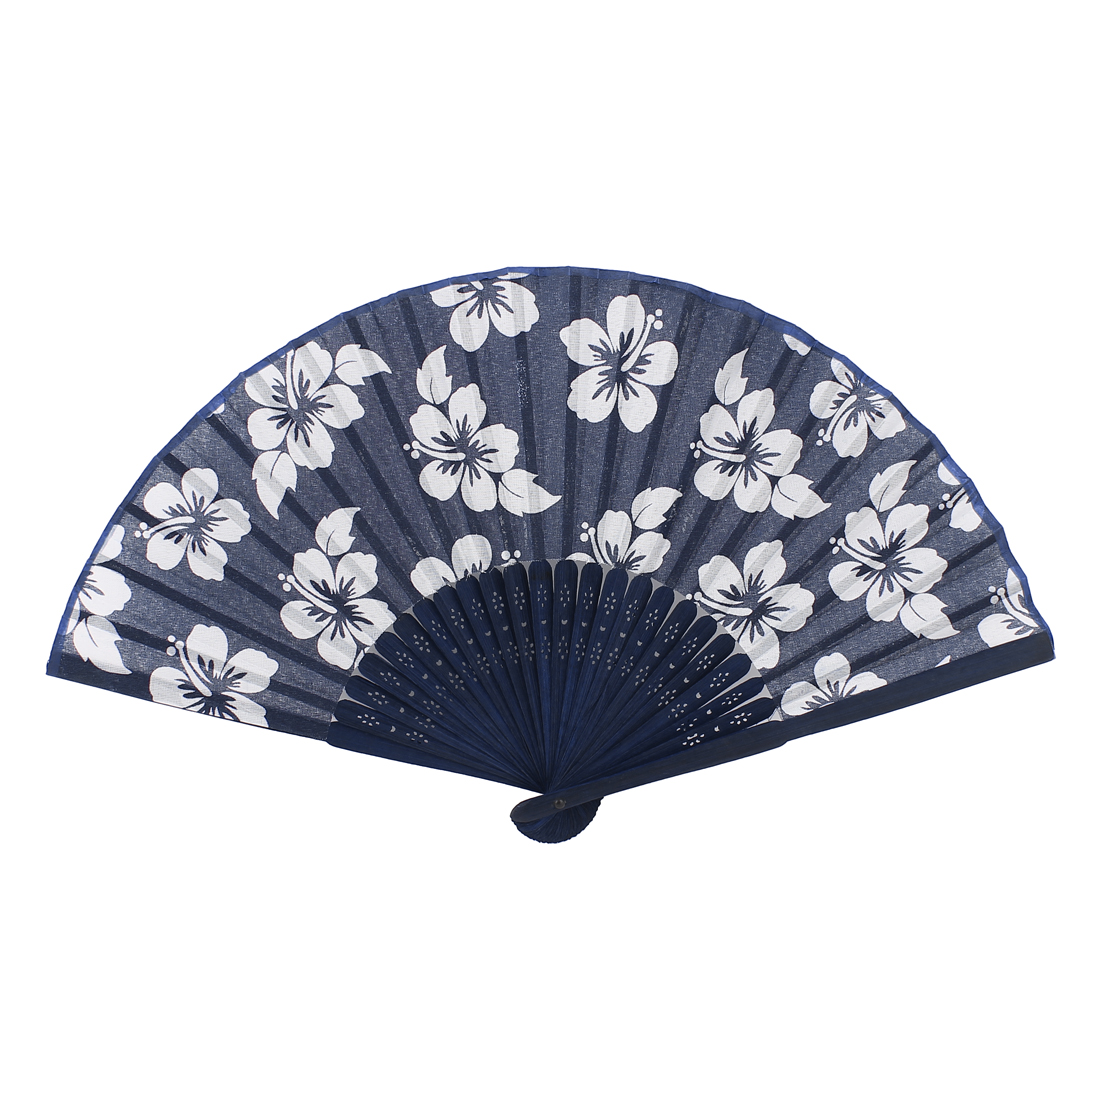 Bamboo Ribs Flowers Printed Chinese Minority Fabric Foldable Craft Hand Fan